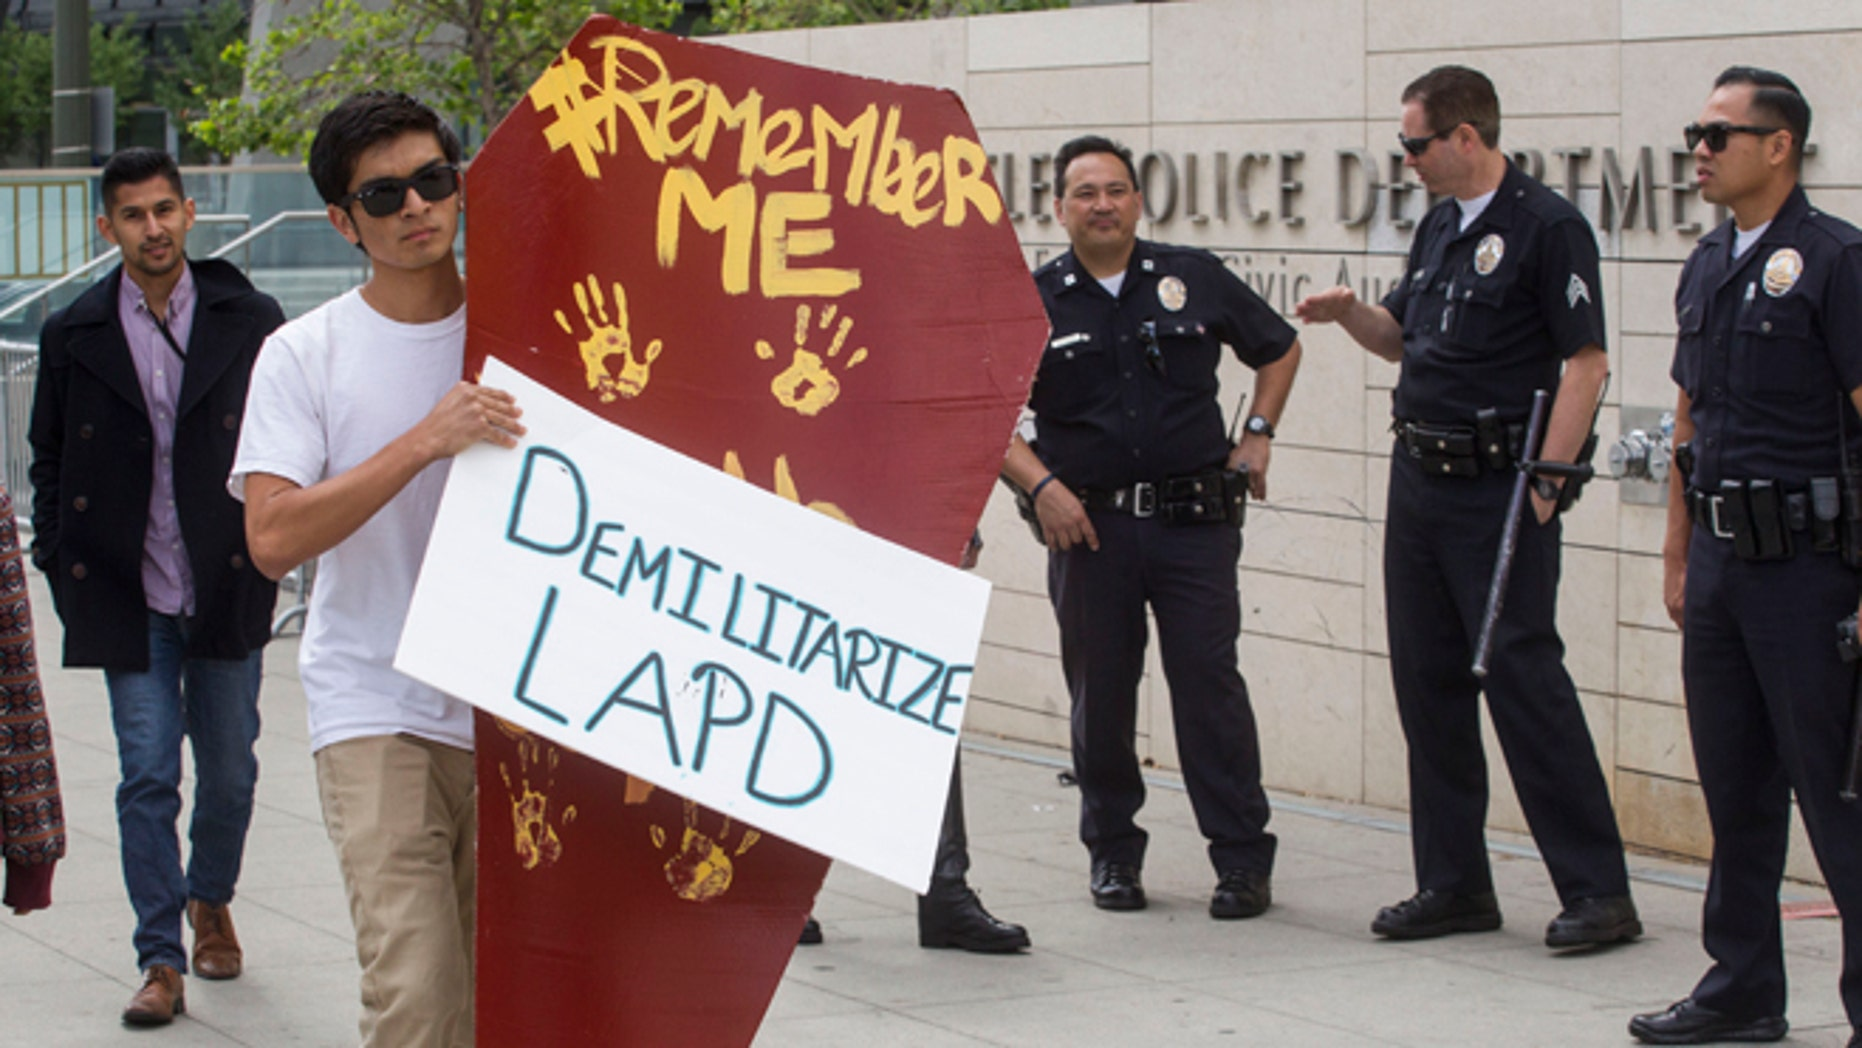 LOS ANGELES, CA - APRIL 7:  A demonstrator carrying a makeshift coffin walks past the Los Angeles Police Department Headquarters on April 7, 2015 in Los Angeles, California. The 'Remember Me' march was organized in downtown L.A. for people who have been killed by law enforcement. (Photo by Ringo Chiu/Getty Images)